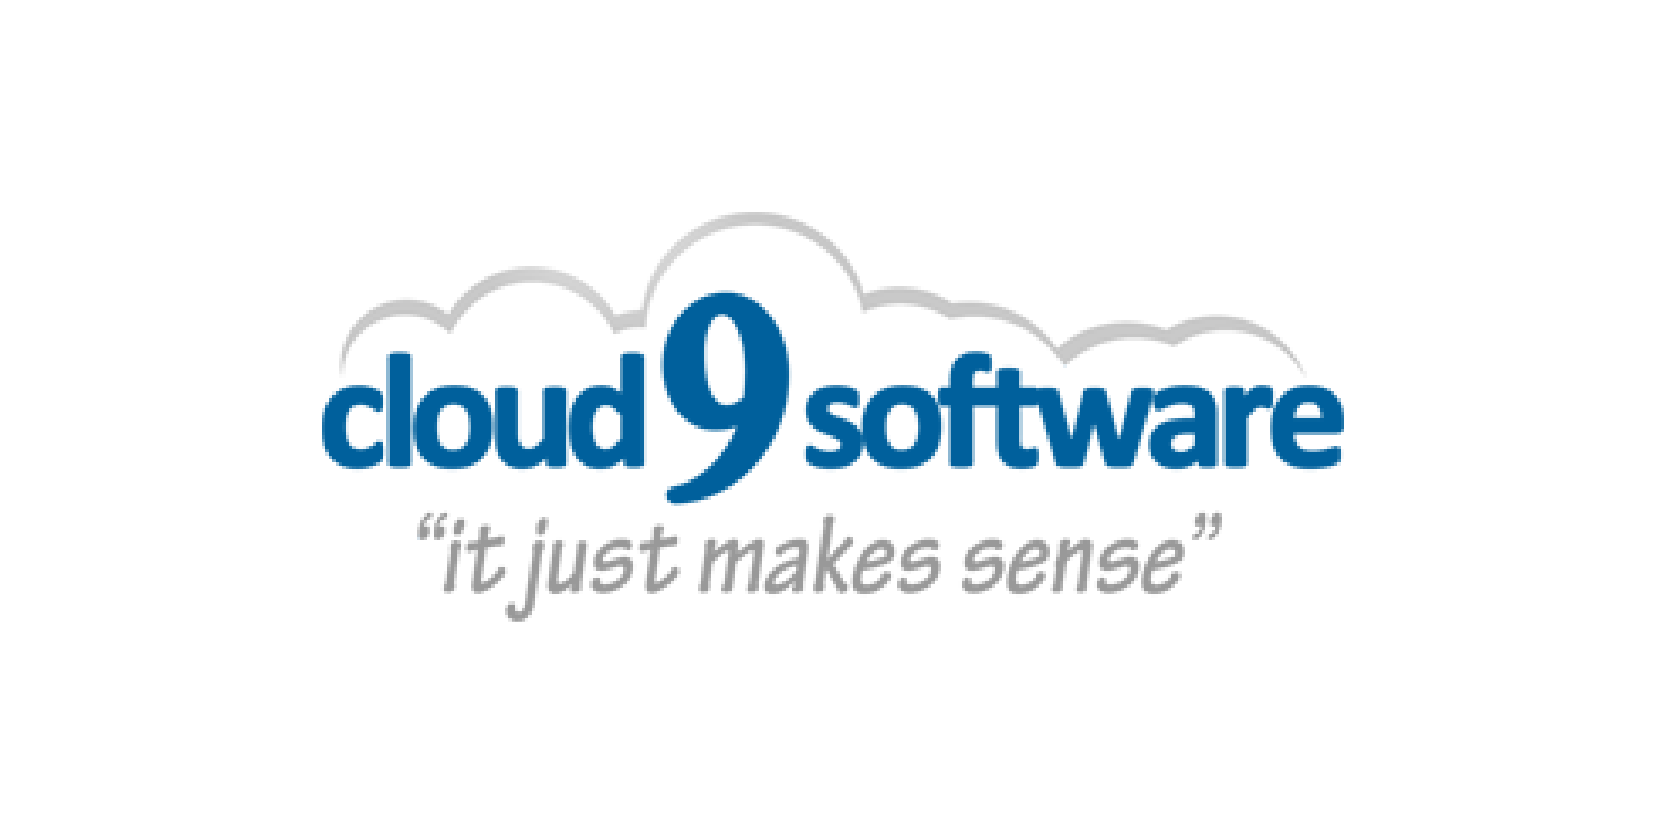 - Cloud 9 Software provides revolutionary, web-based software to manage any orthodontic practice. Forget about remote desktop or expensive servers, Cloud 9 runs in a web browser from a PC, Mac, or tablet. Our unrivaled success is a direct reflection of the world-class care that we provide. It just makes sense!